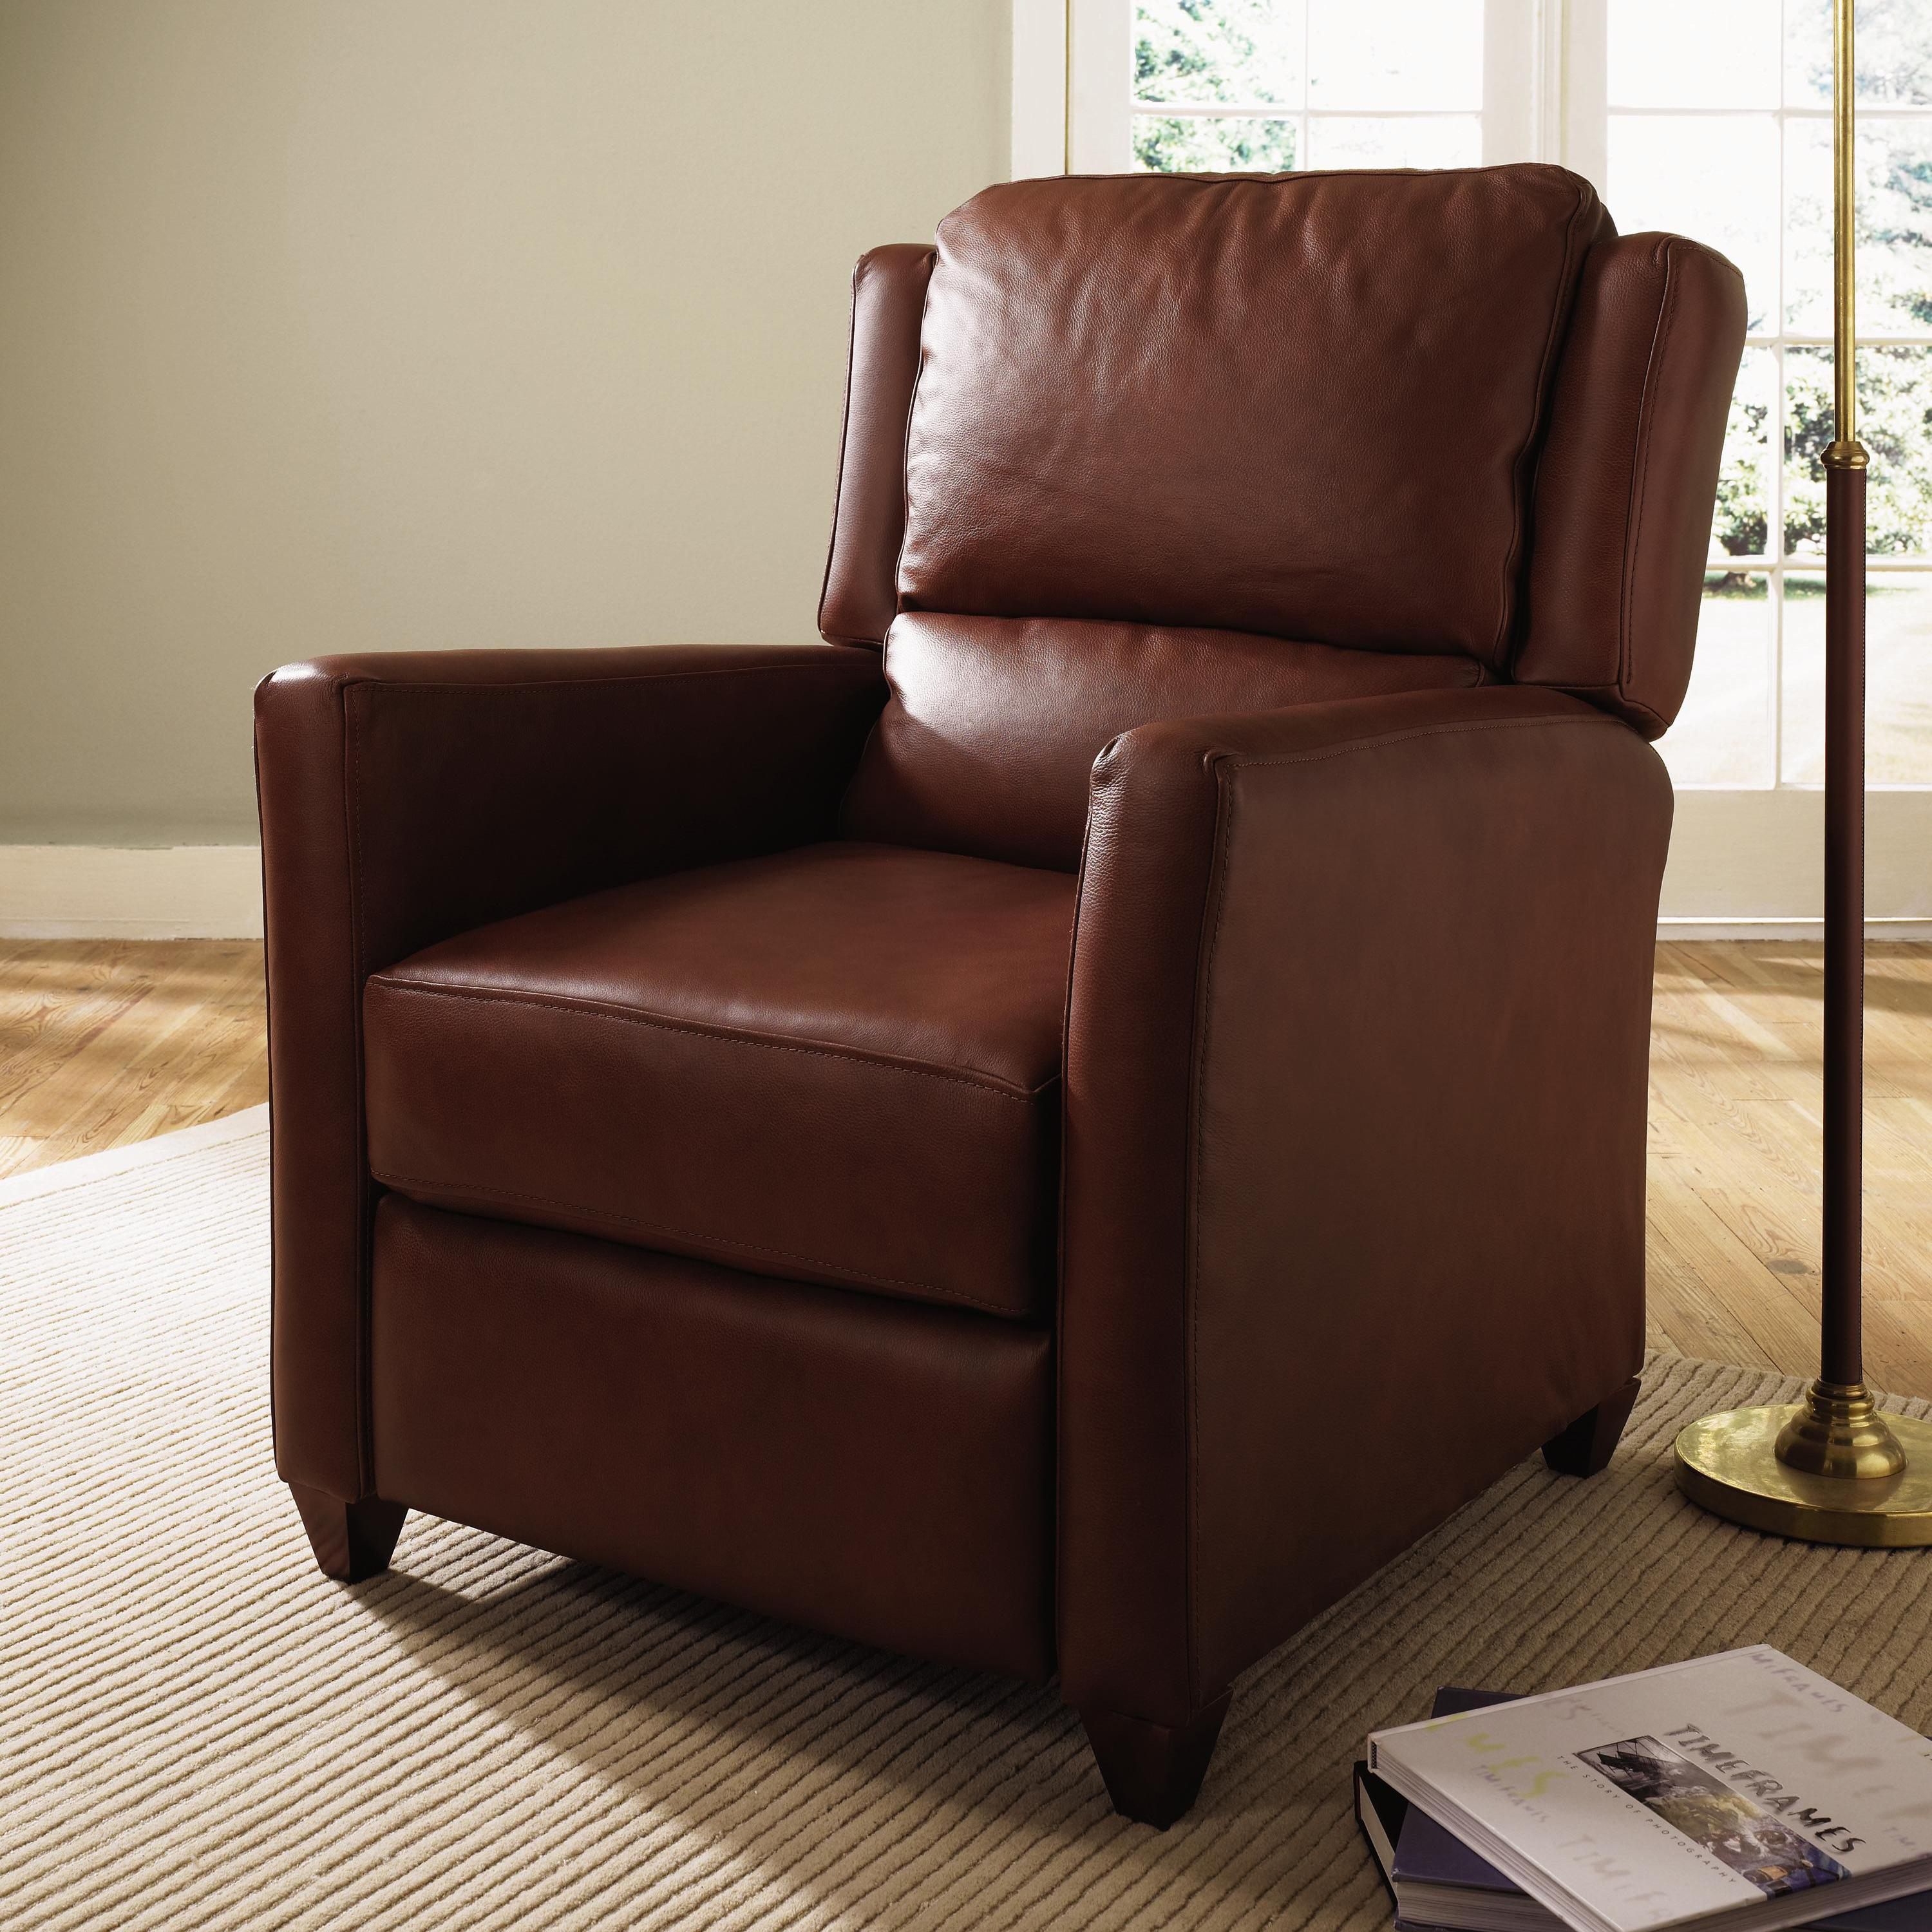 High Leg Recliners by Klaussner & High Leg Recliners (Leather) by Klaussner - J u0026 J Furniture ... islam-shia.org